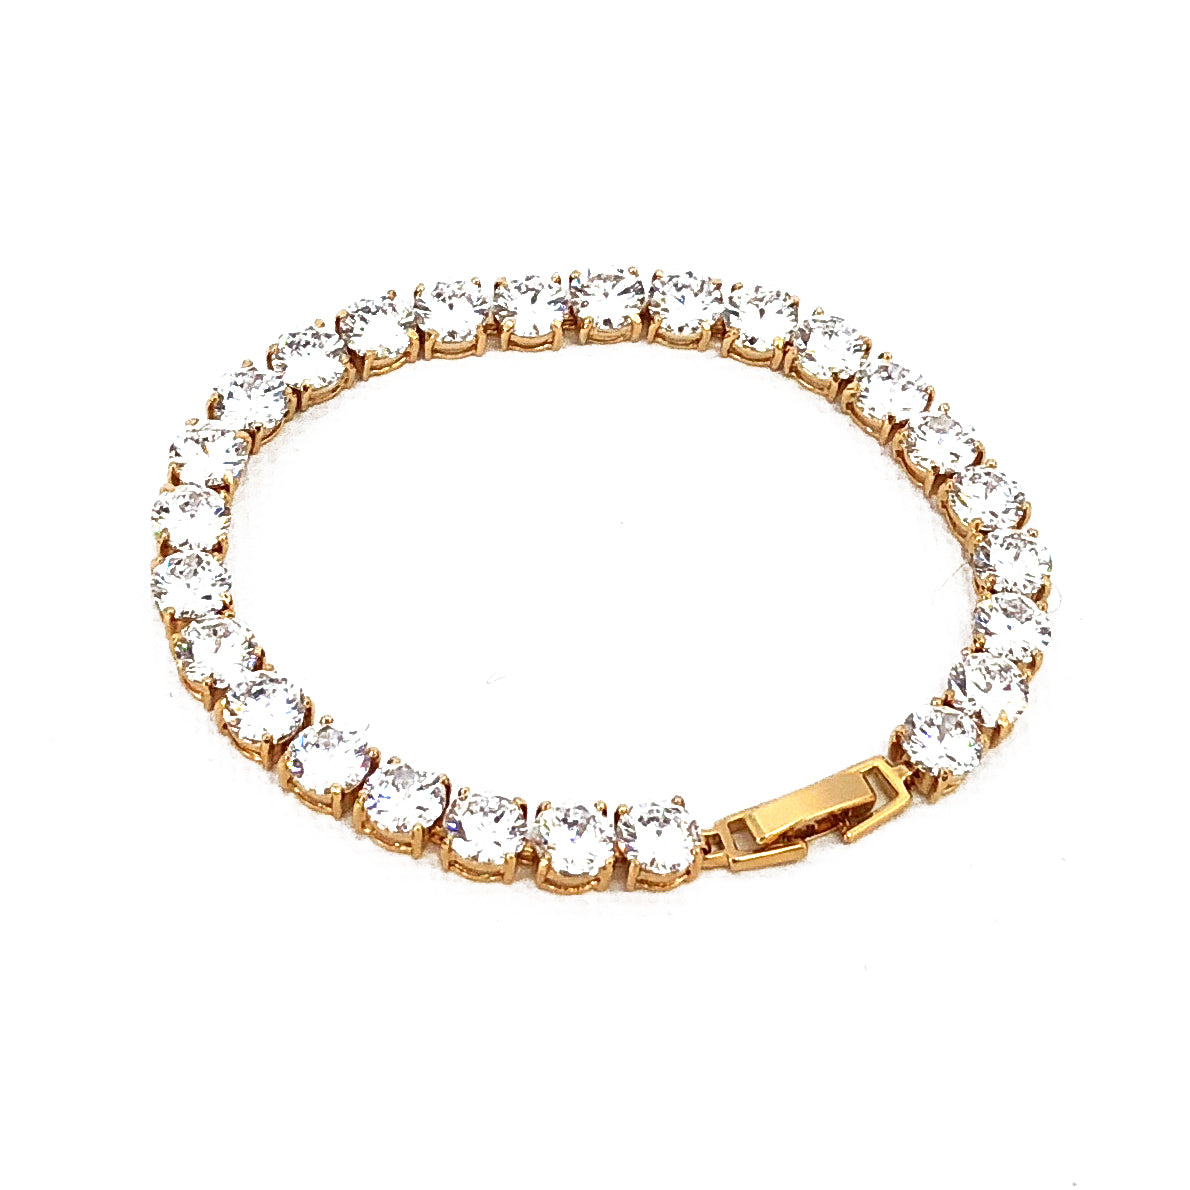 bracelet prd hands uk diamond slf open co ottoman veryexclusive standard delicate gold shape